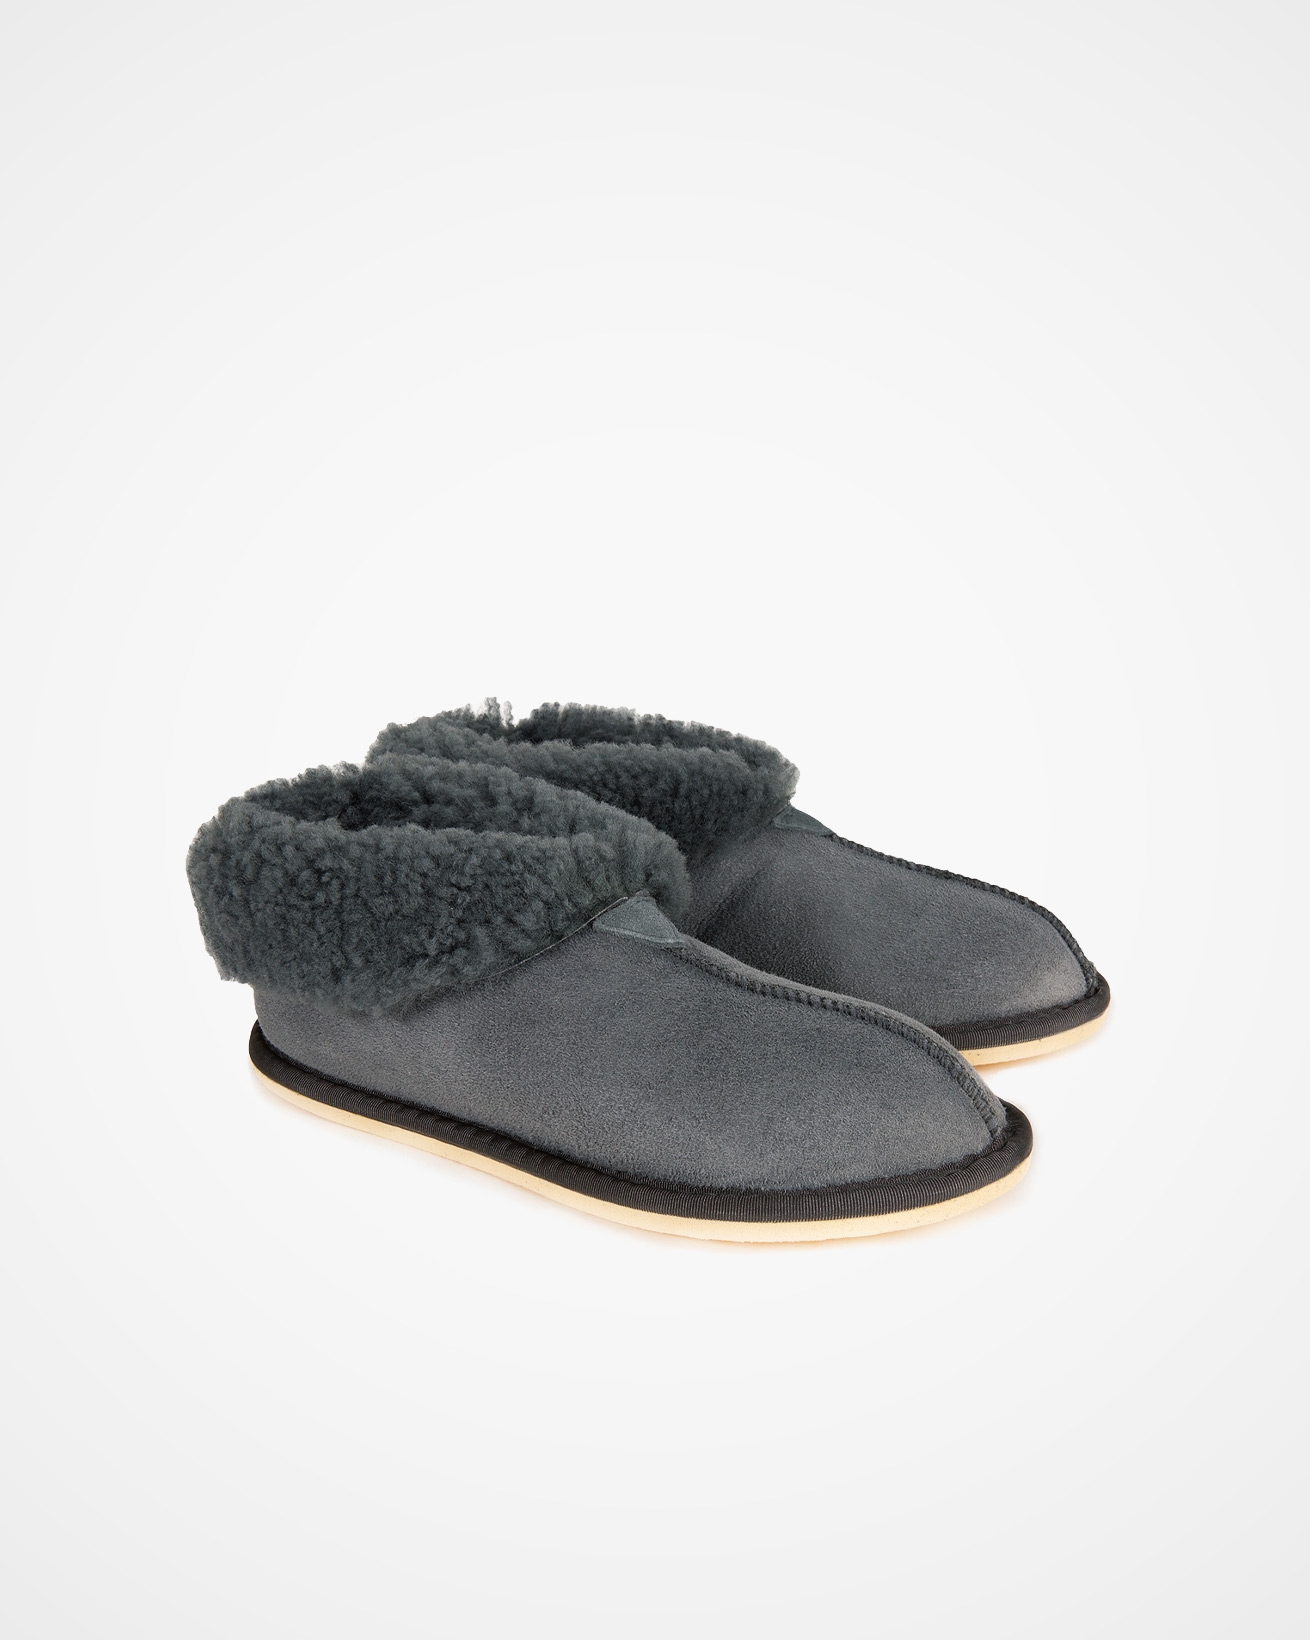 2100_ladies-sheepskin-bootee-slippers_dark-grey_pair.jpg